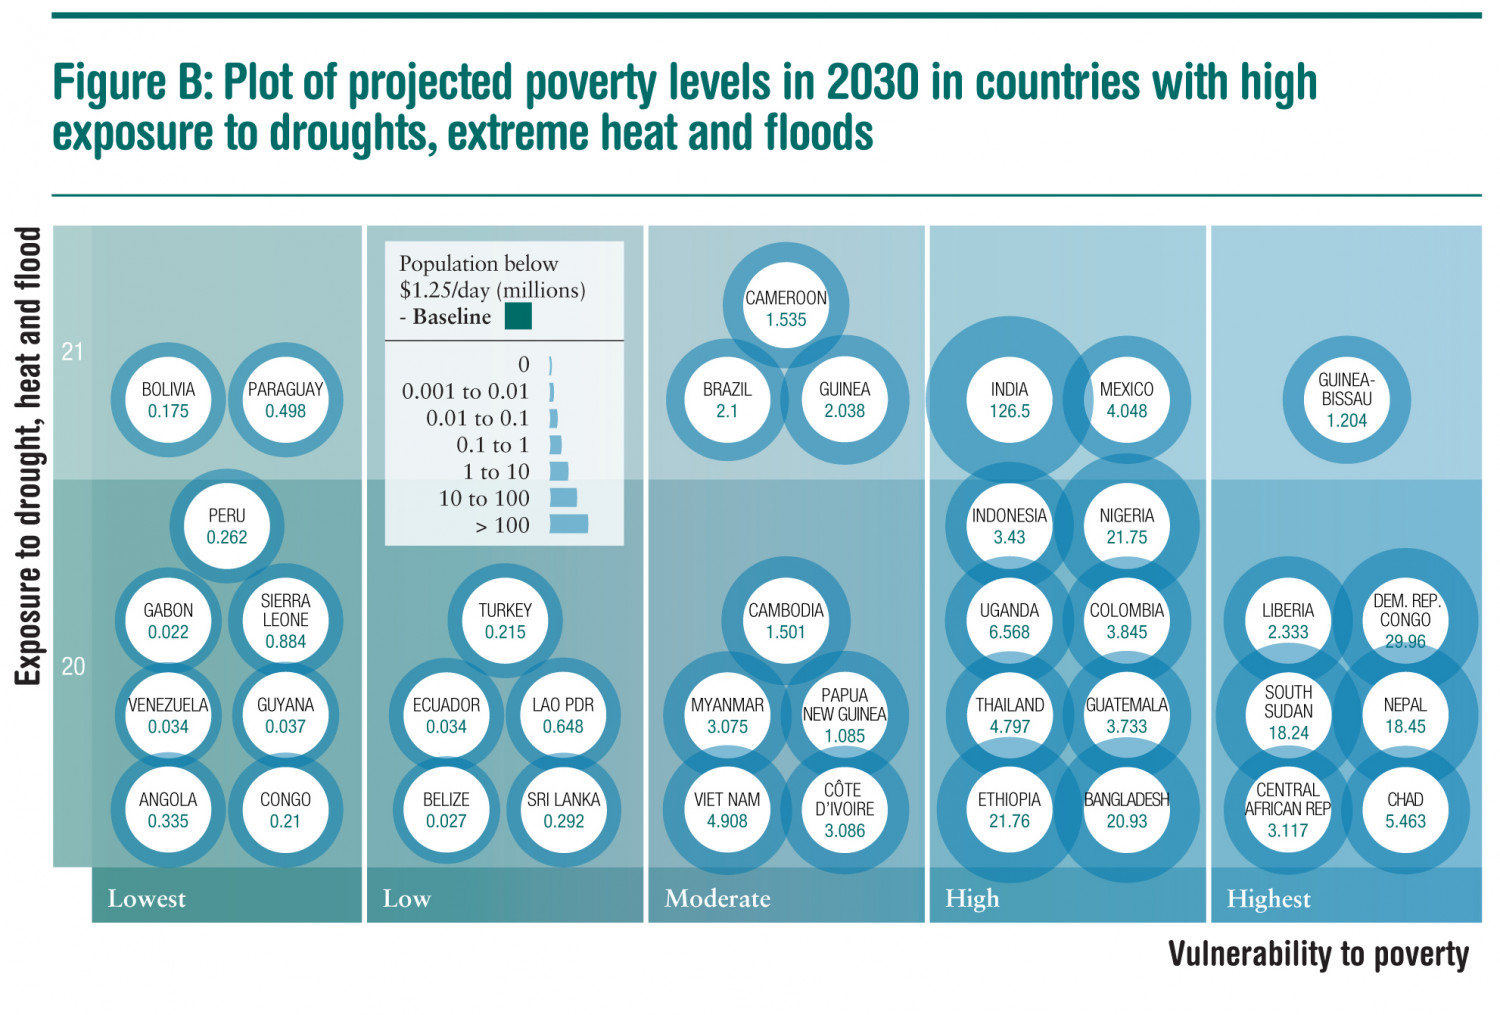 Projected poverty levels in 2030 in countries with high exposure to droughts, extreme heat and floods Infographic